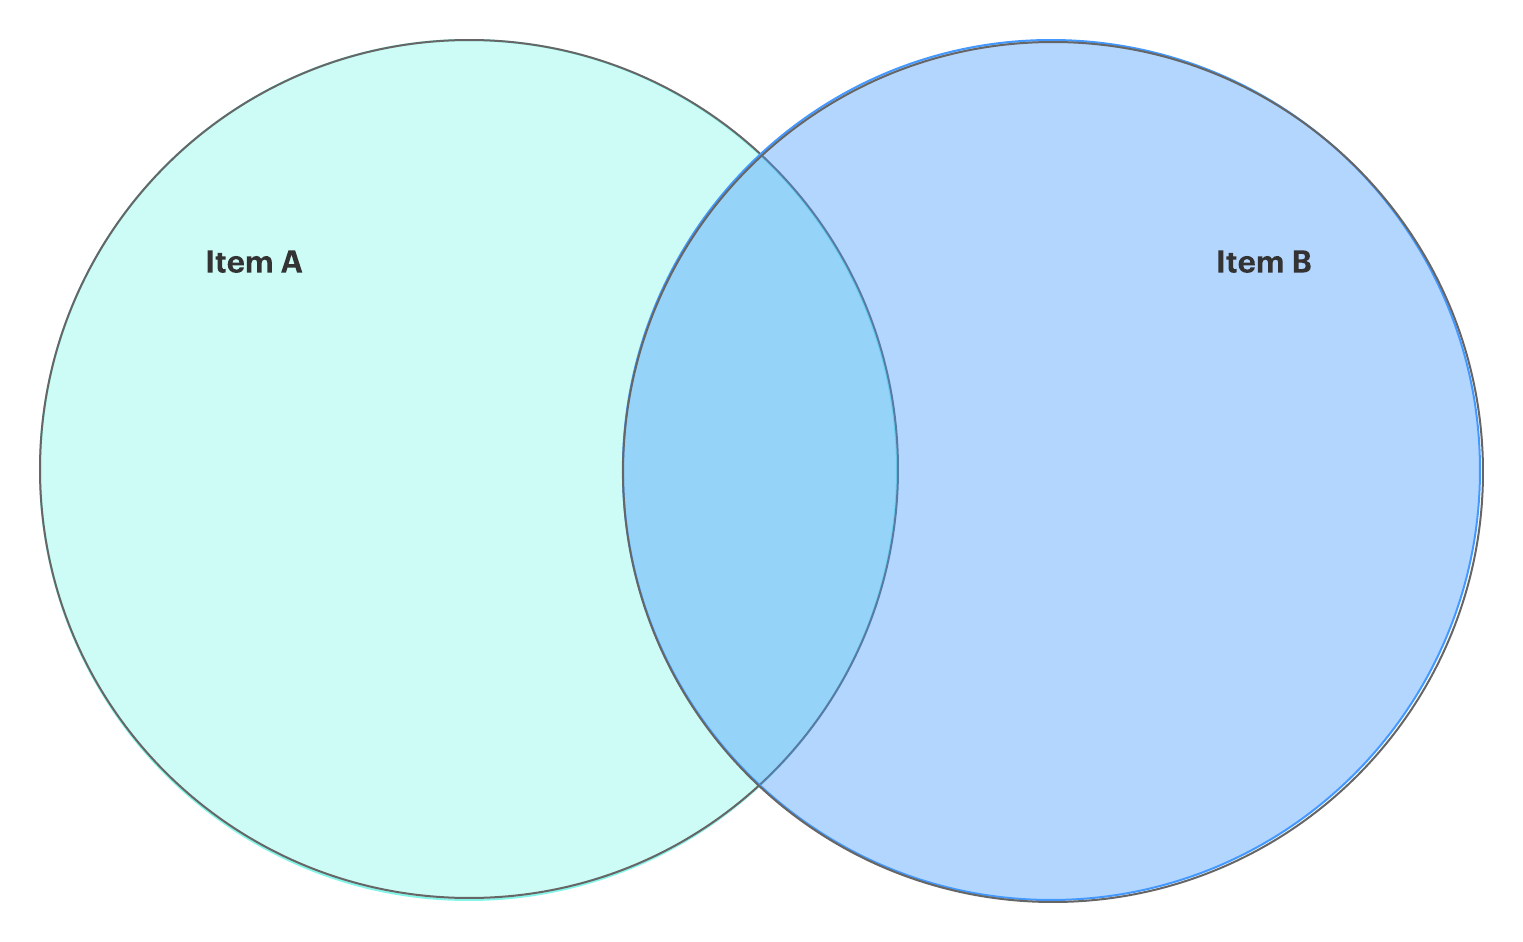 venn diagram creator - Akba.greenw.co